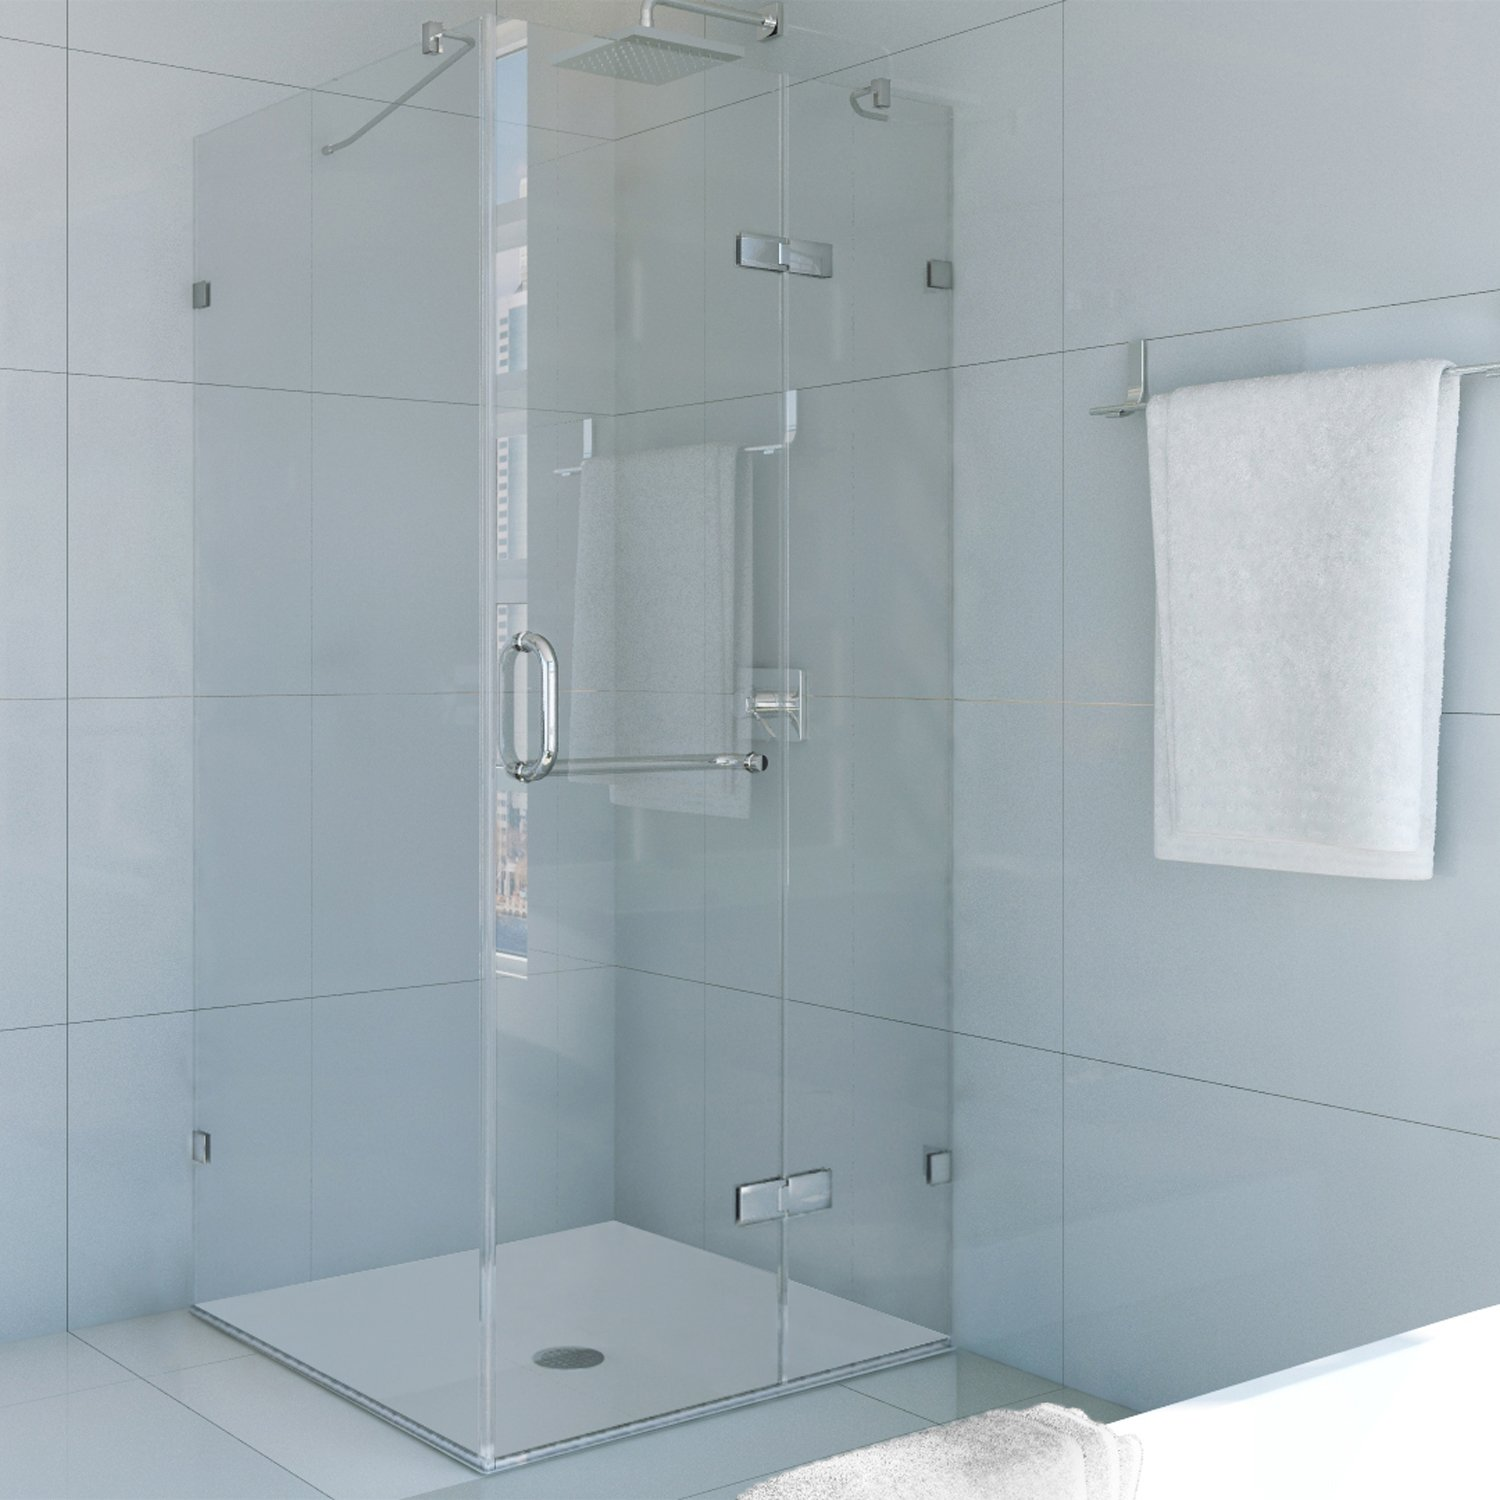 Frameless Shower Enclosure with .375-in. Clear Glass and Chrome Hardware - One Piece Tub And Shower Enclosures - Amazon.com & VIGO Monteray 36 x 36-in. Frameless Shower Enclosure with .375-in ... Pezcame.Com